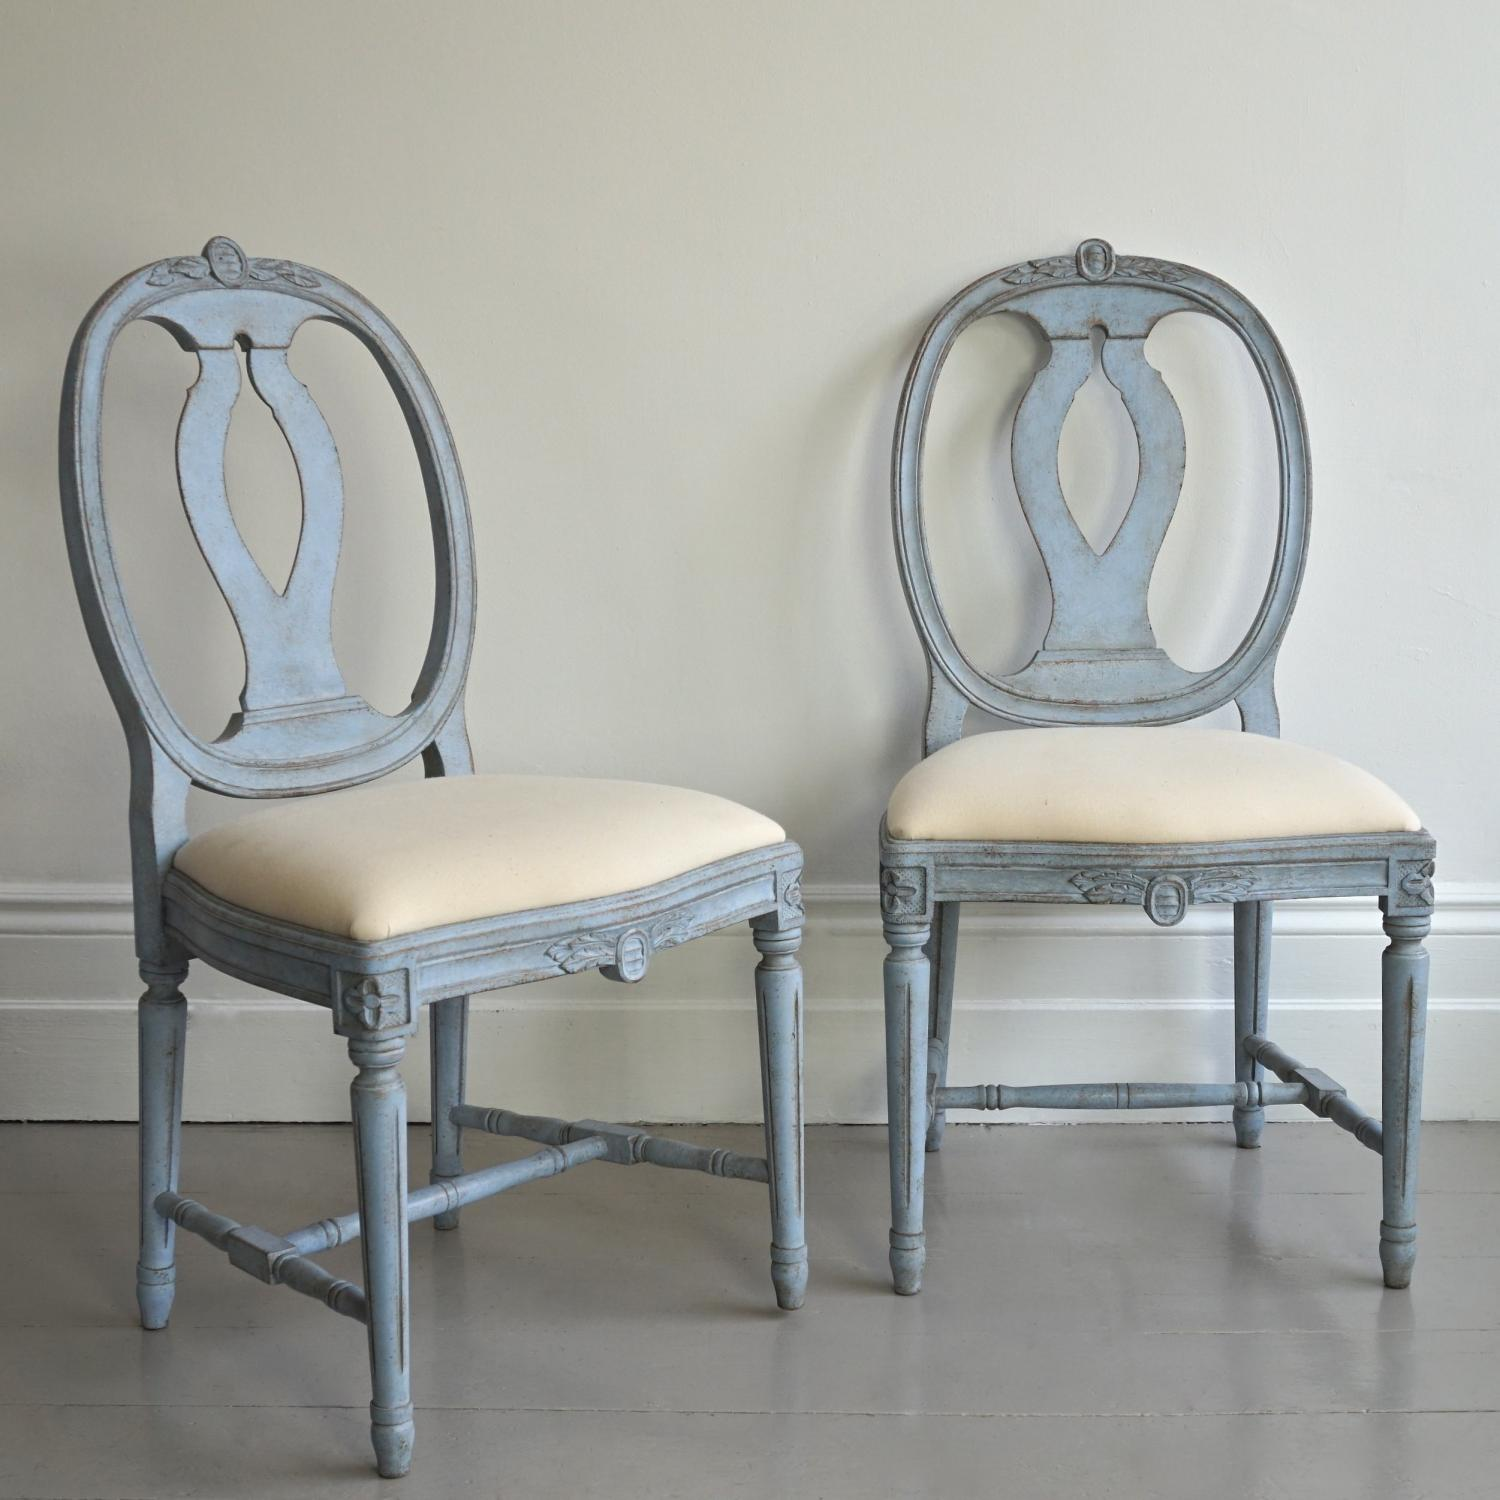 PAIR OF BESPOKE HAND CARVED GUSTAVIAN STYLE C